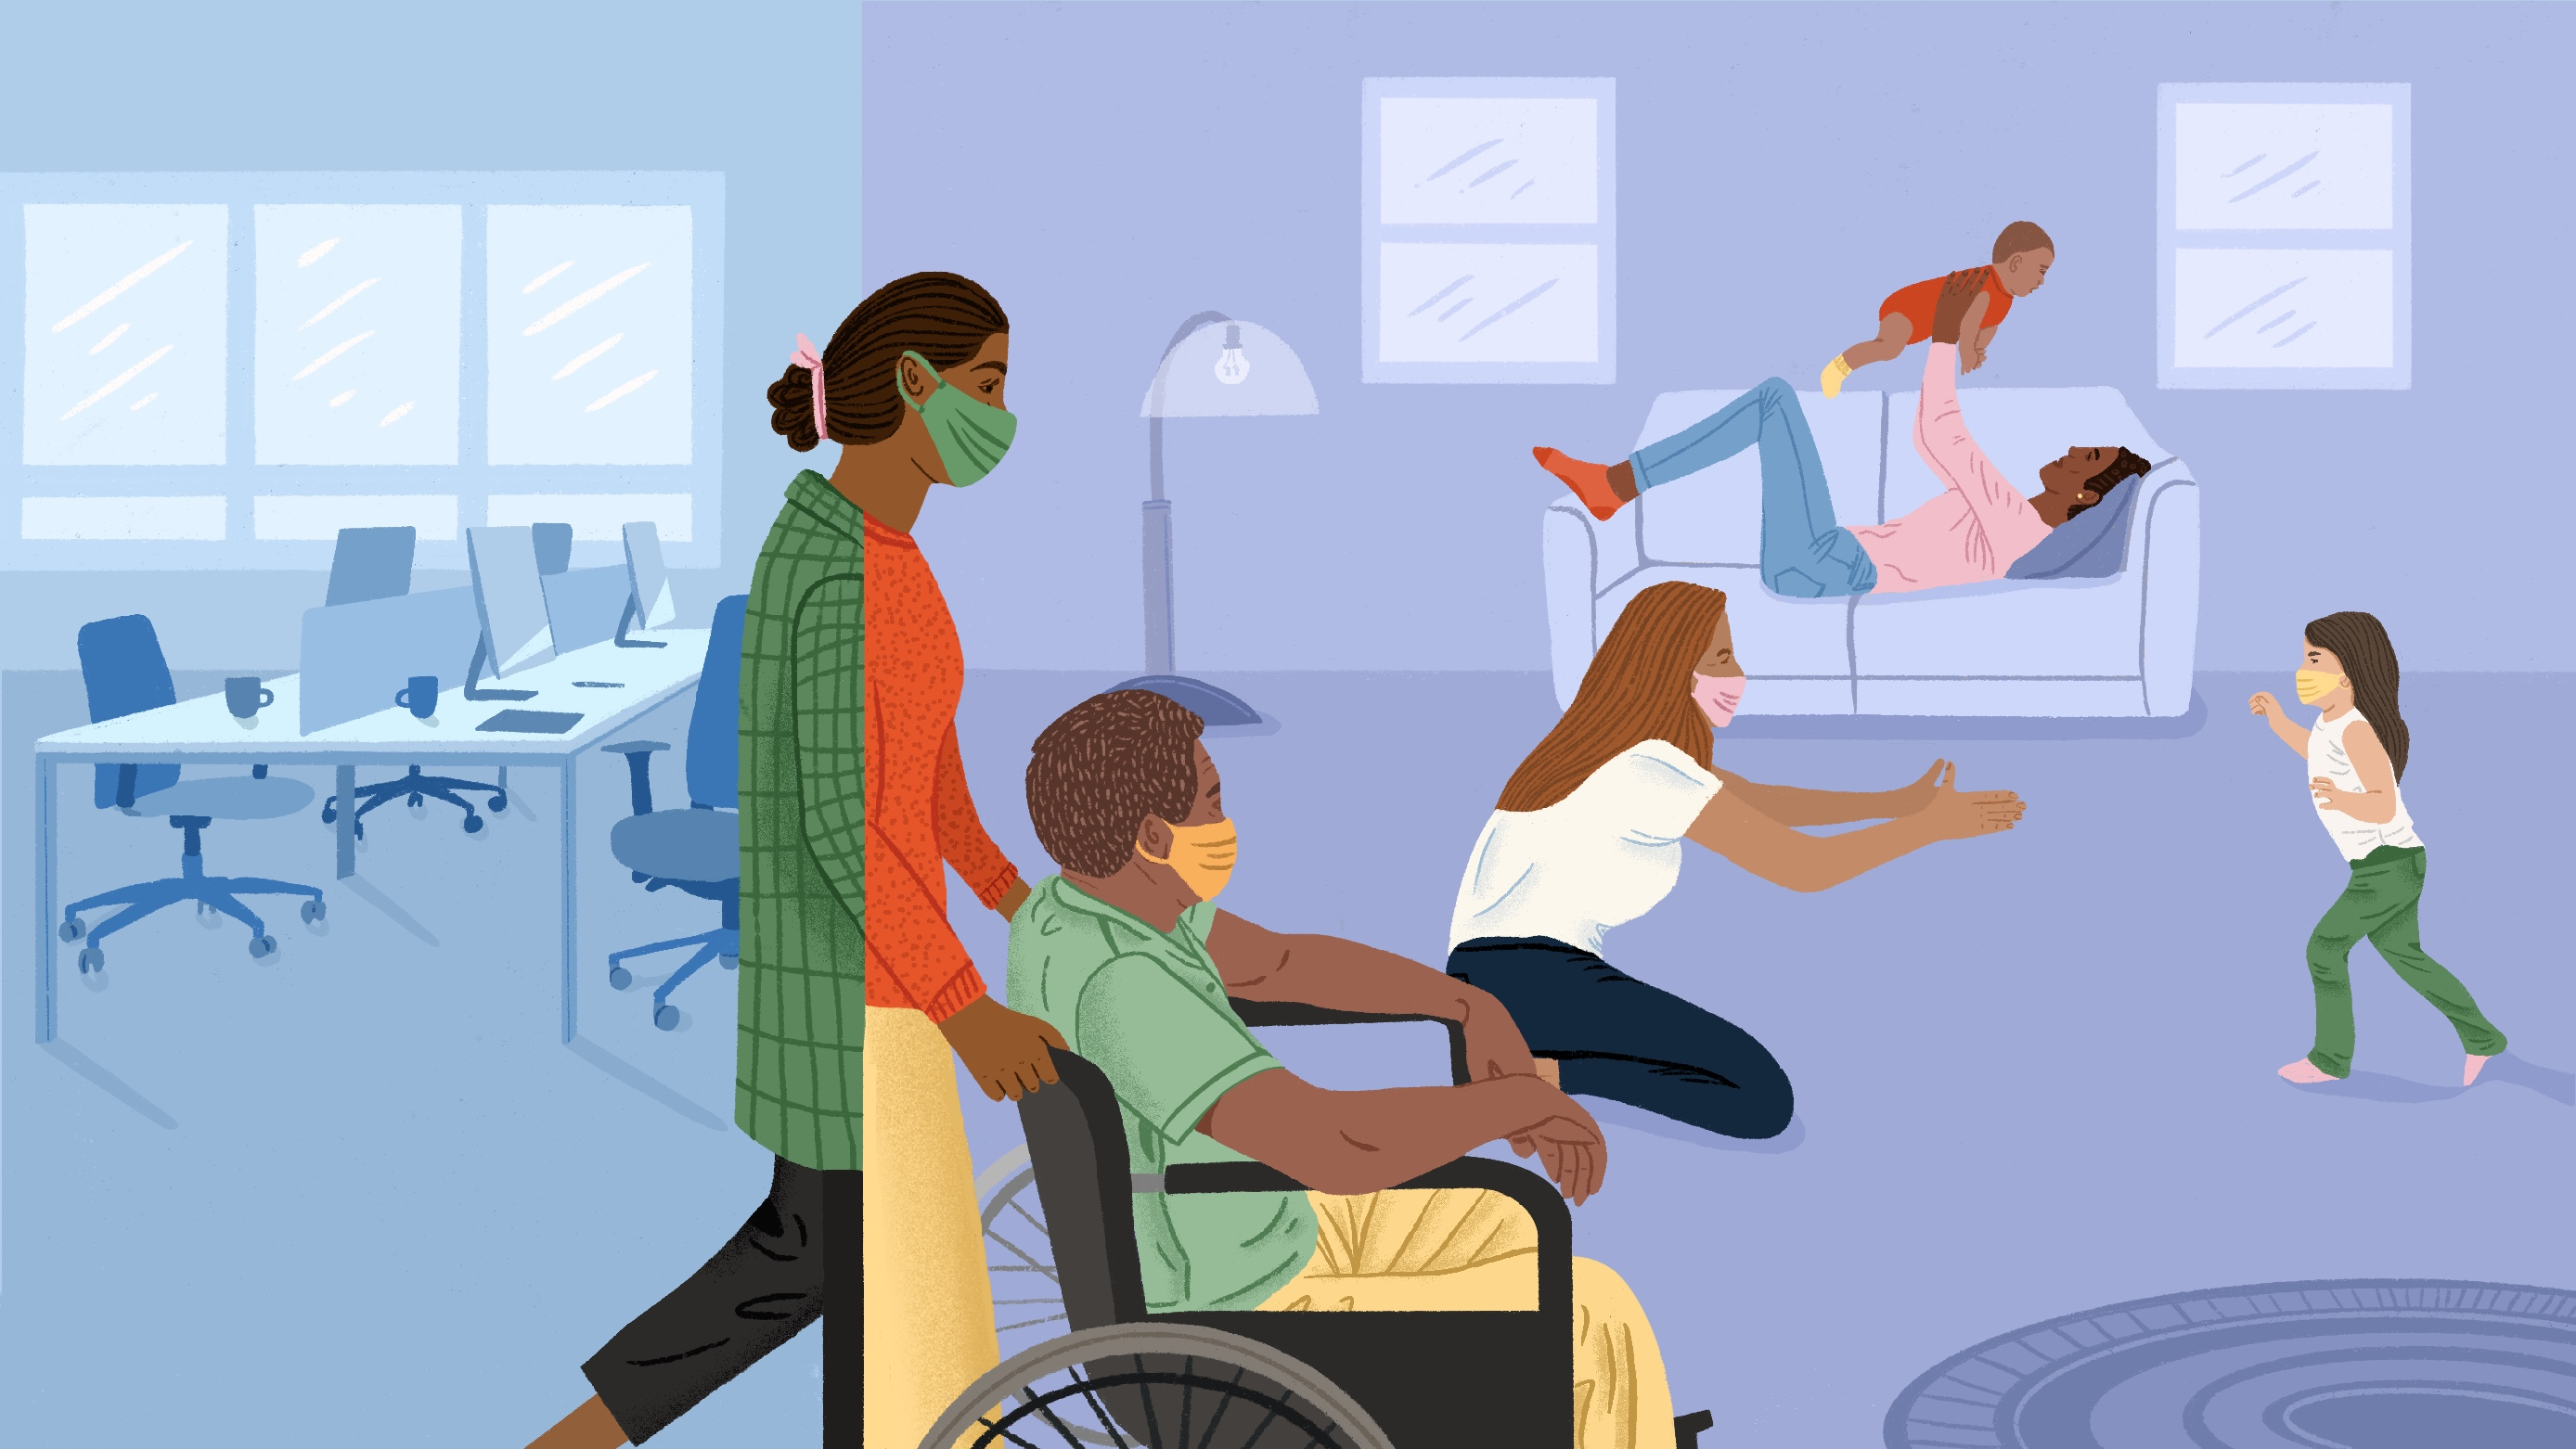 an illustration of a woman pushing a wheelchair with a person sitting in it. She is walking away from her office and into her living room where other women are caregiving in the background.